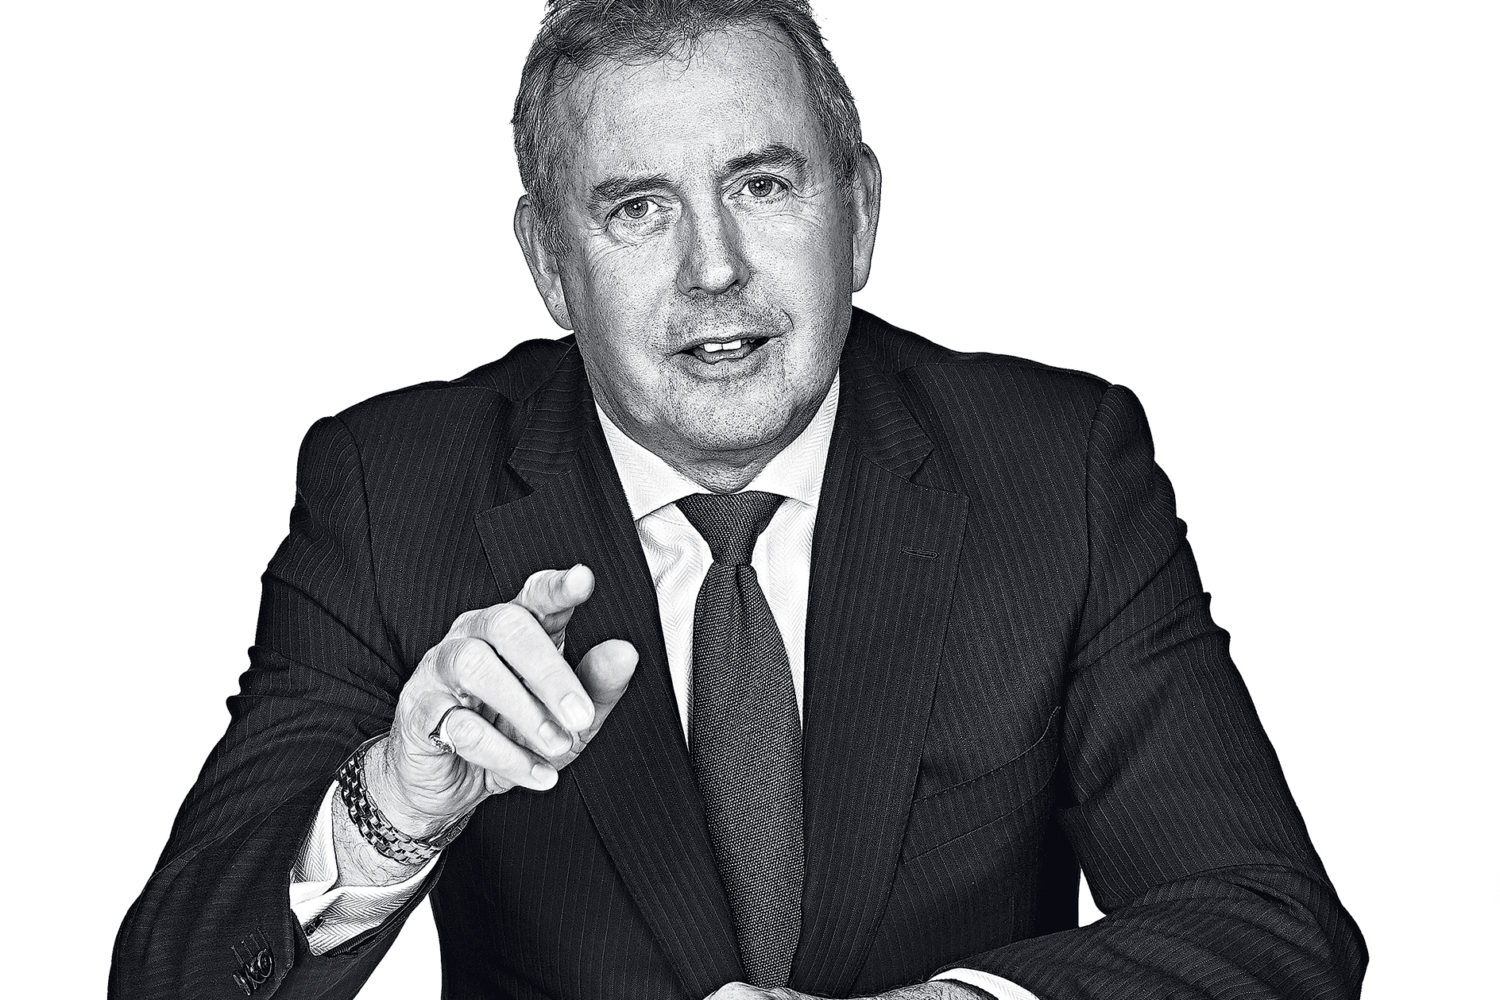 Photograph of Sir Kim Darroch by Jeff Elkins.